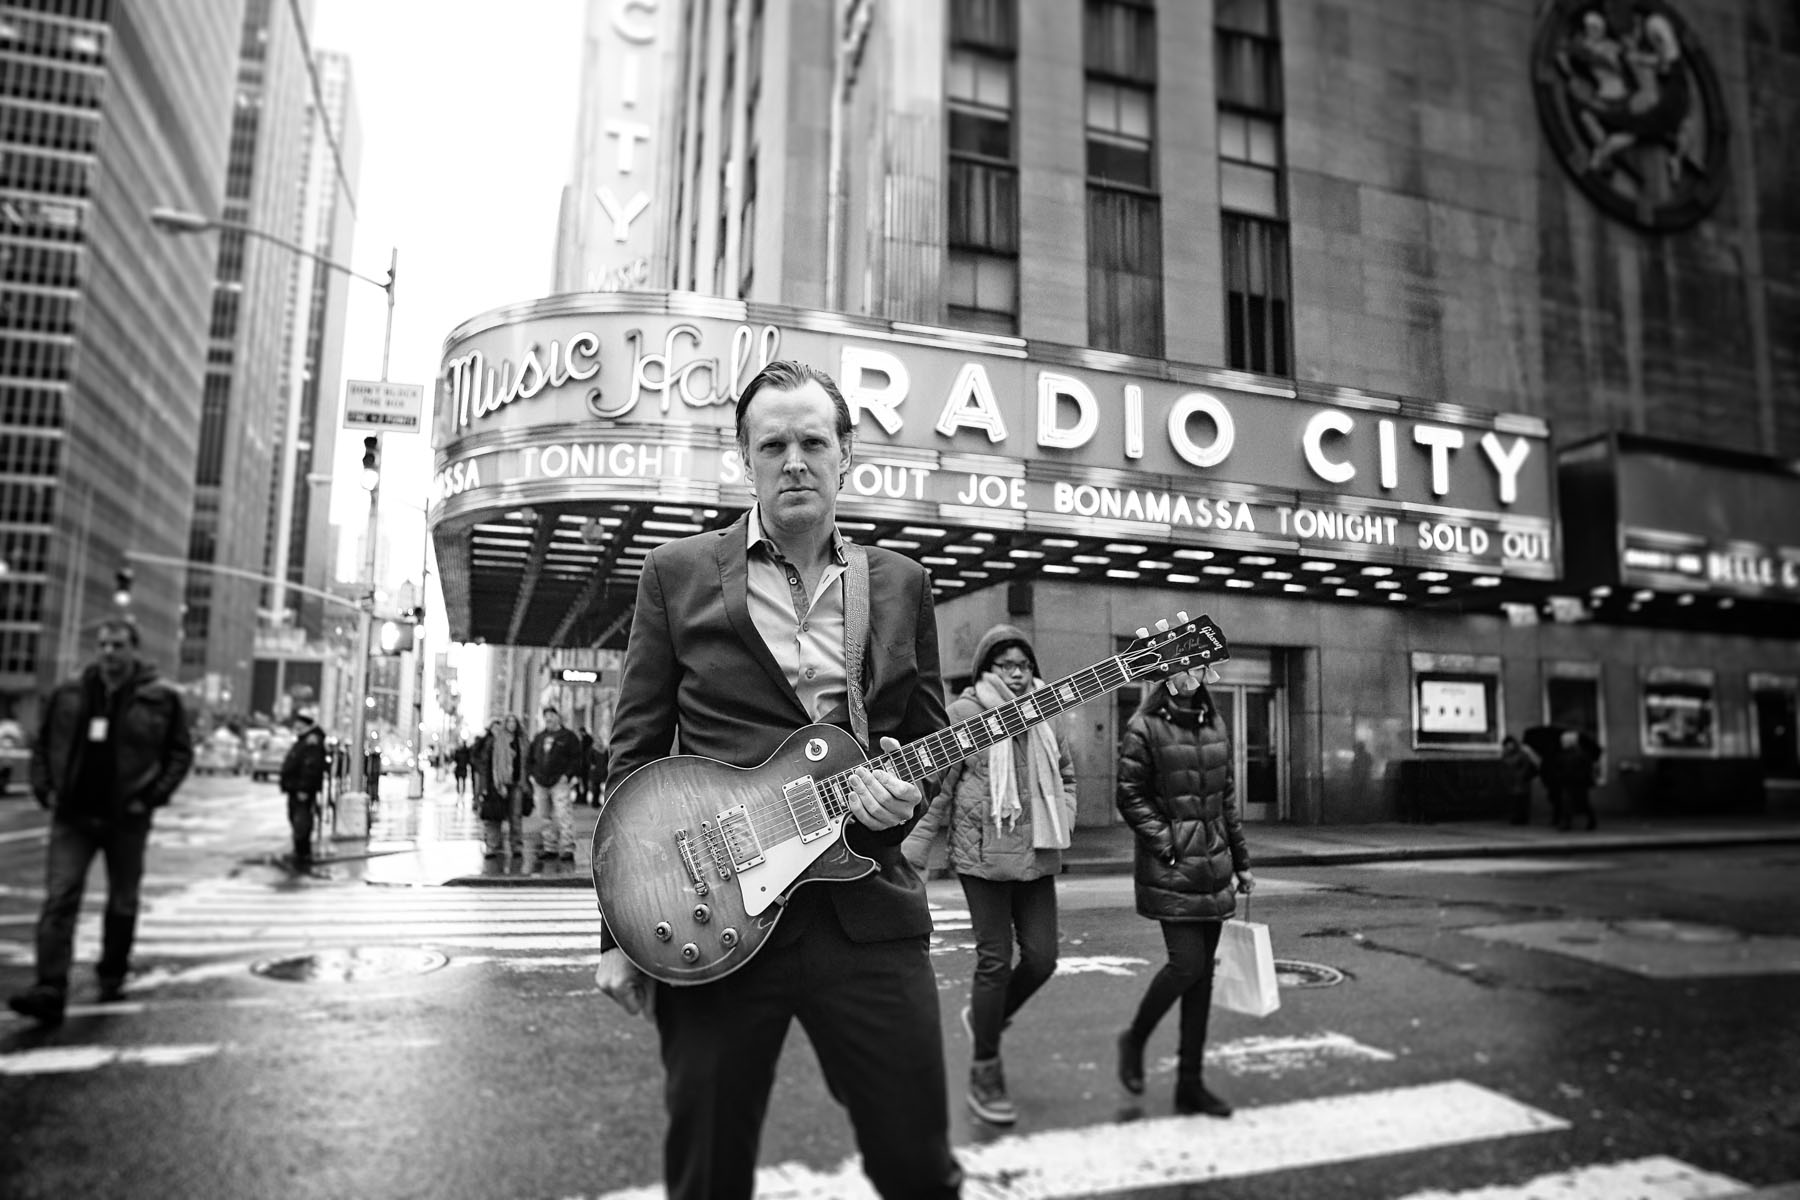 Joe Bonamassa at Radio City by Christie Goodwin